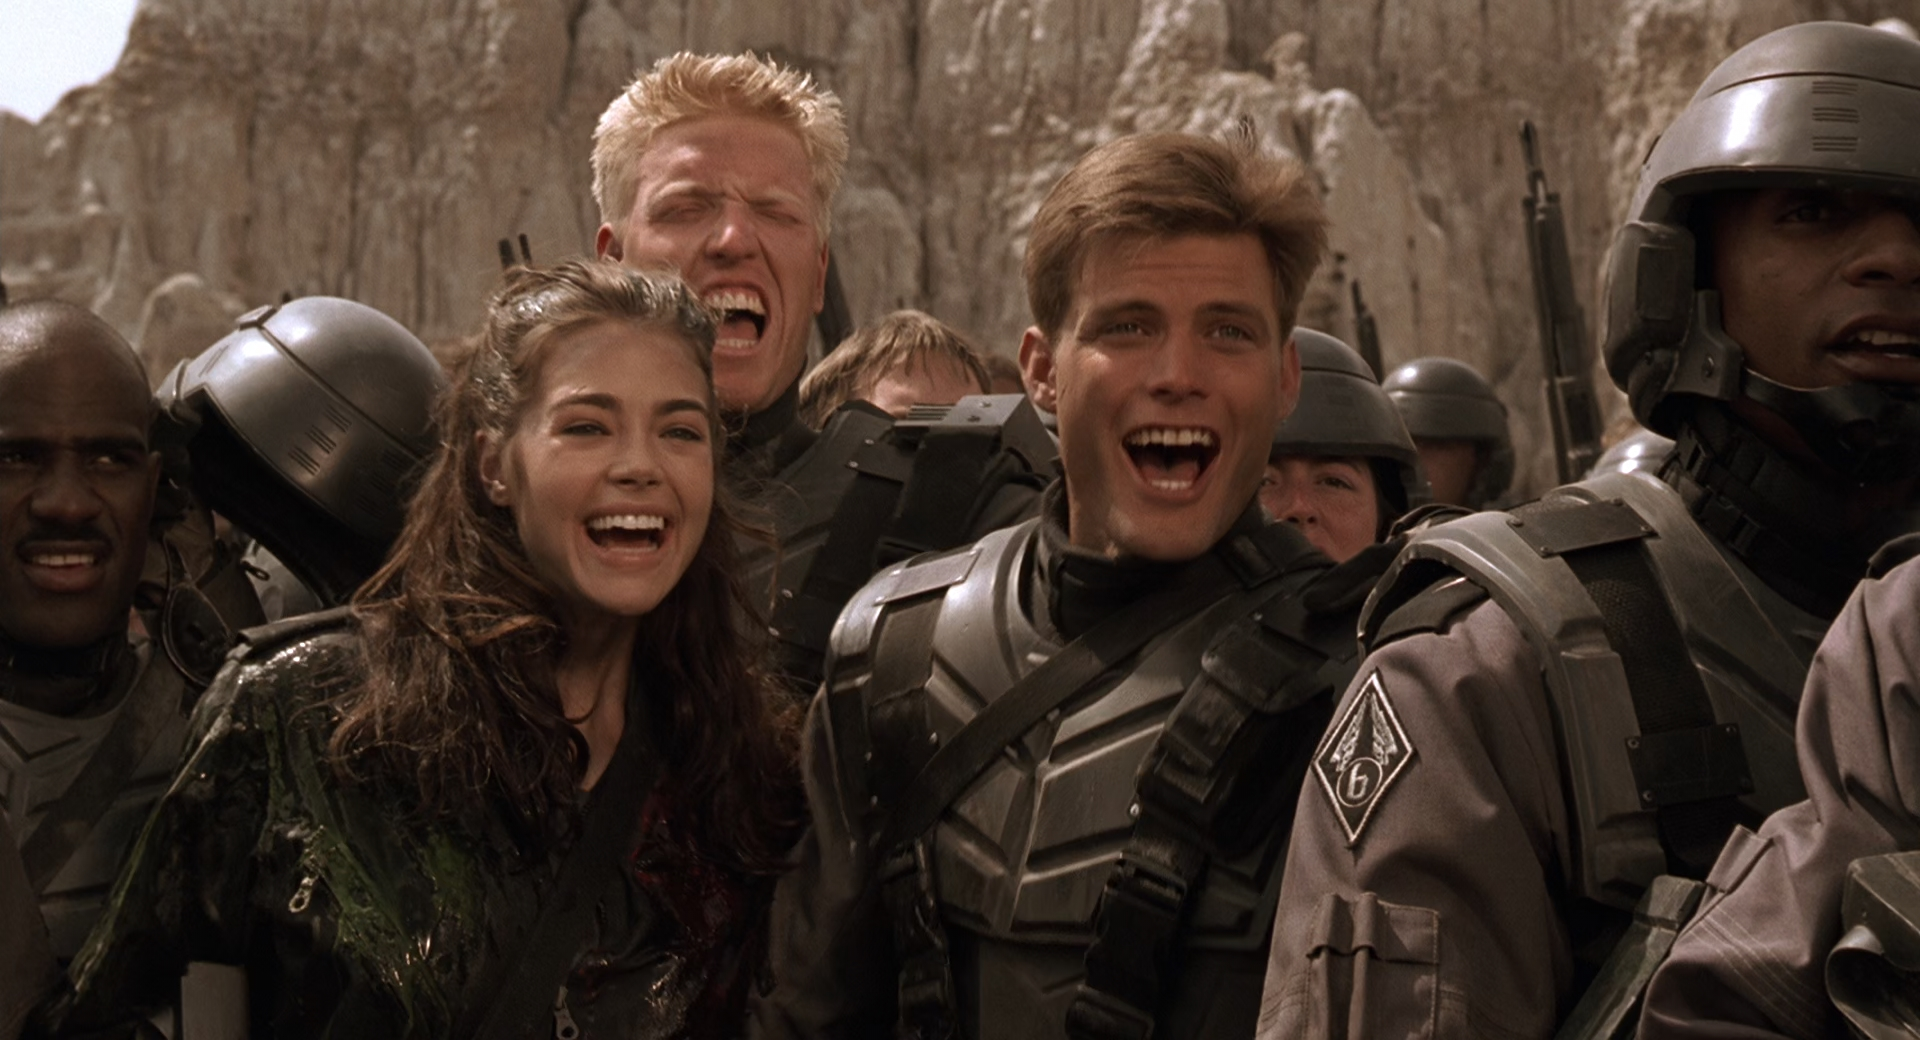 [Podcast] La Revancha de los Novatos #14: Starship Troopers